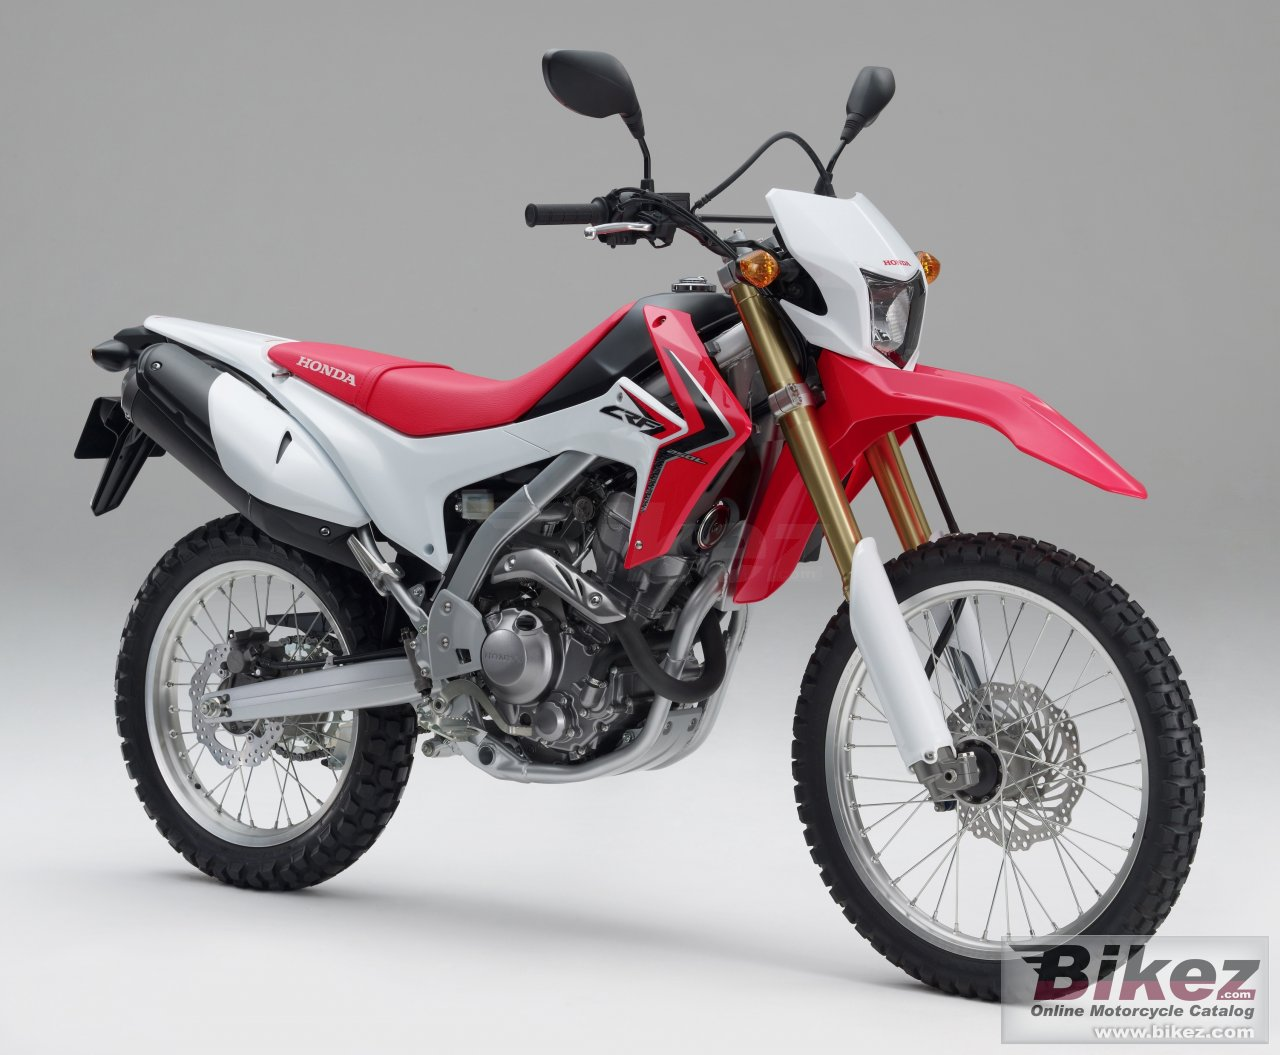 Big Honda crf250l picture and wallpaper from Bikez.com